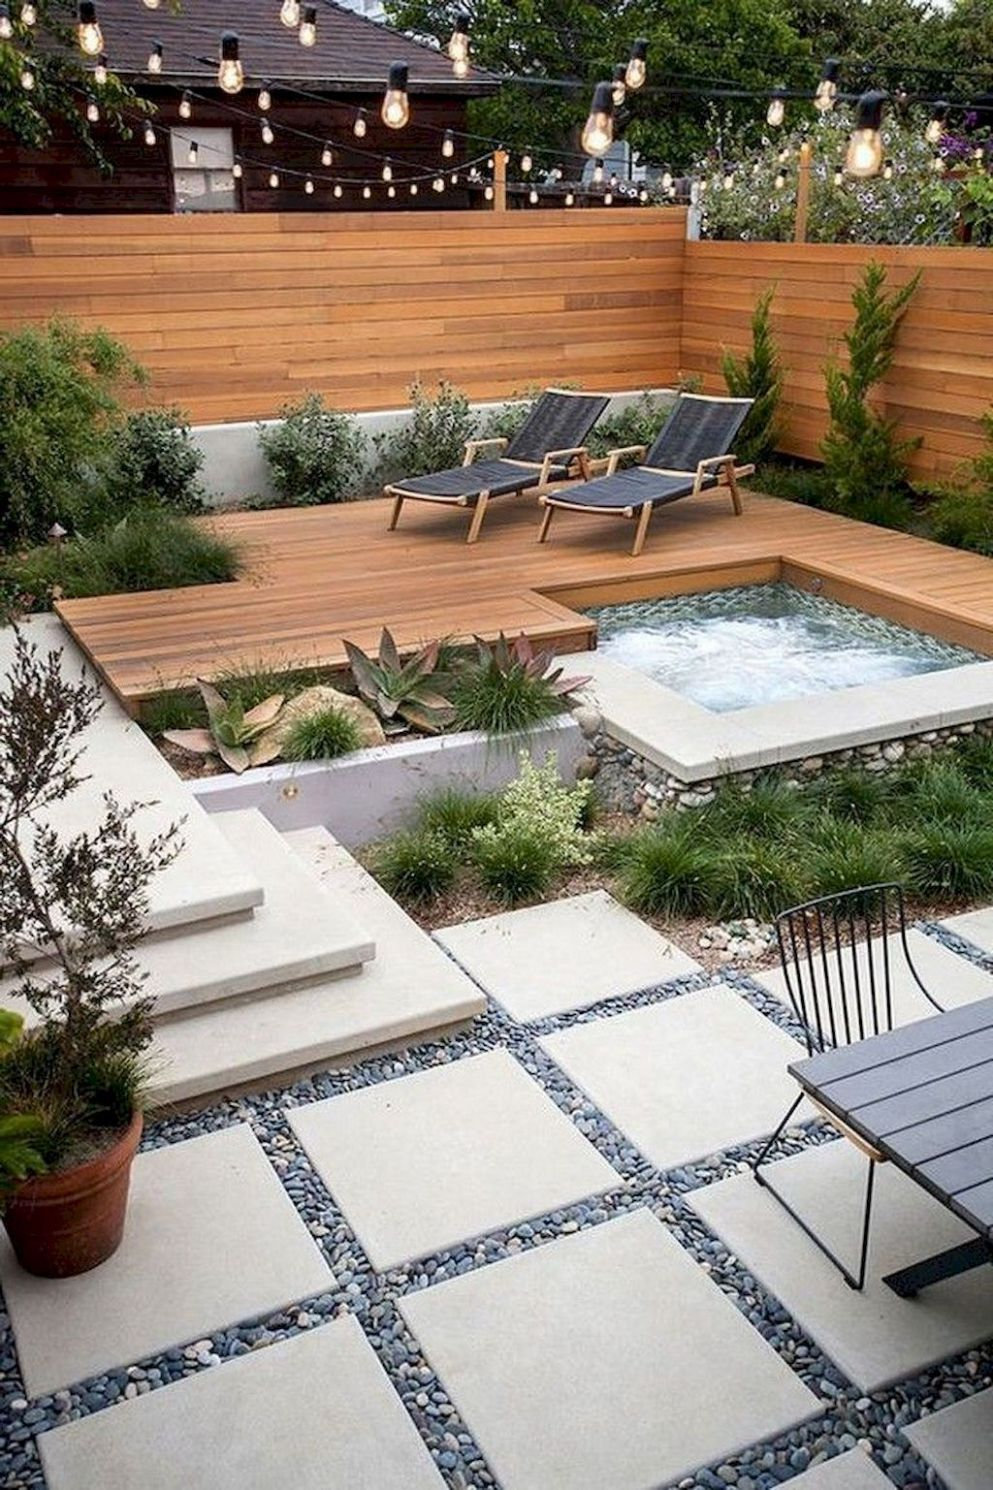 12+ Beautiful Small Backyard Makeover s Ideas On A Budget - WOWDECORA - backyard makeover ideas